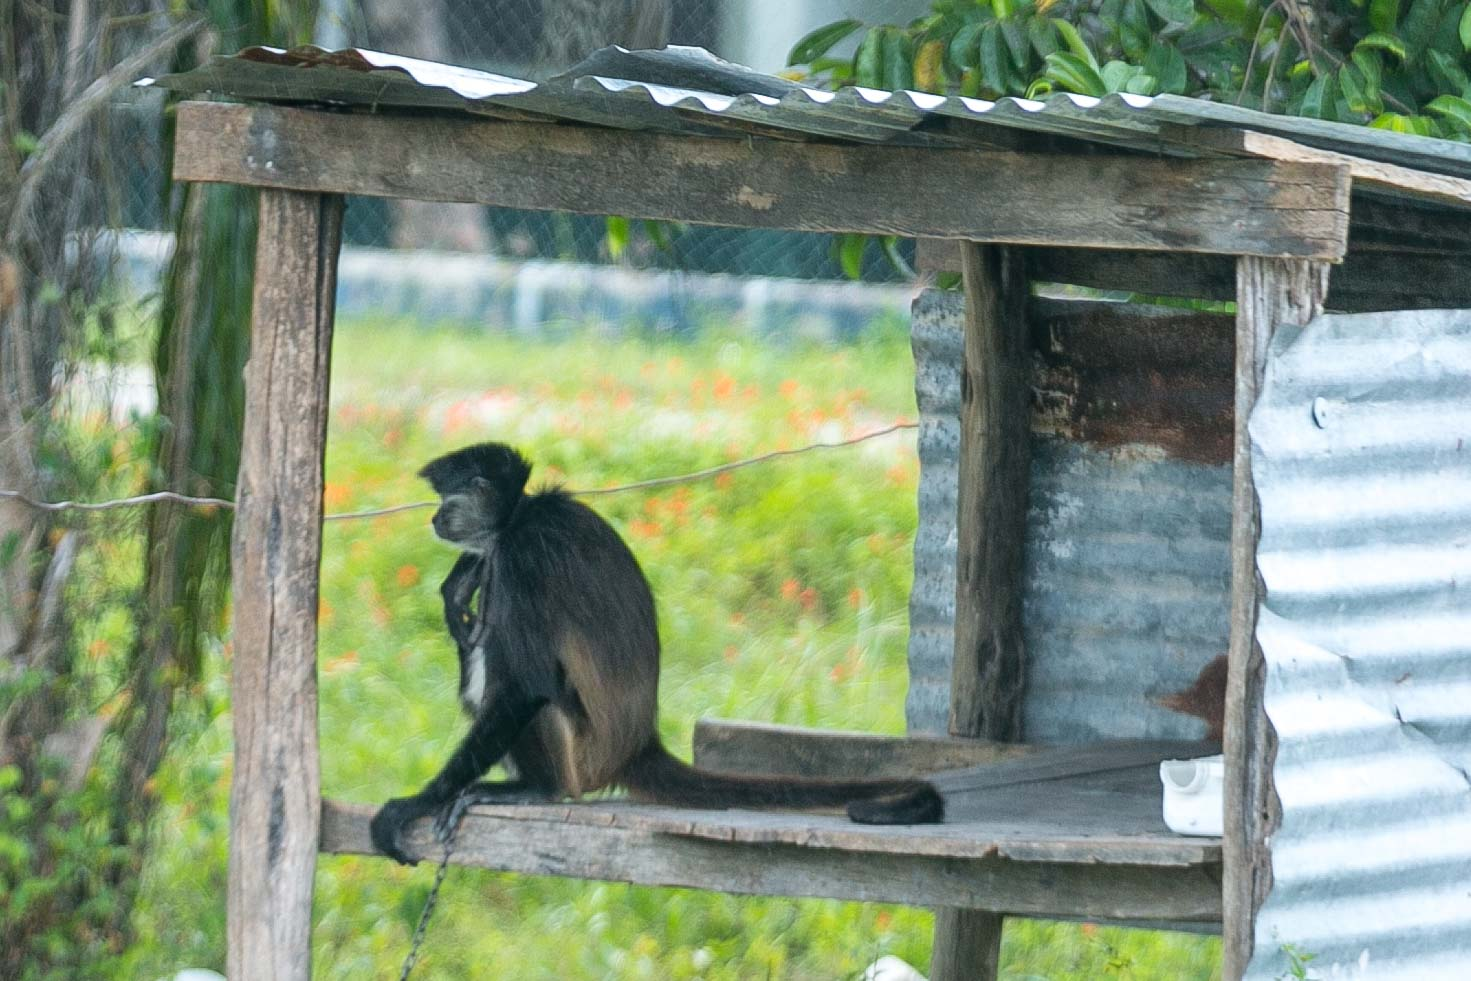 A monkey spotted along the roadway in Costa Maya, Mexico